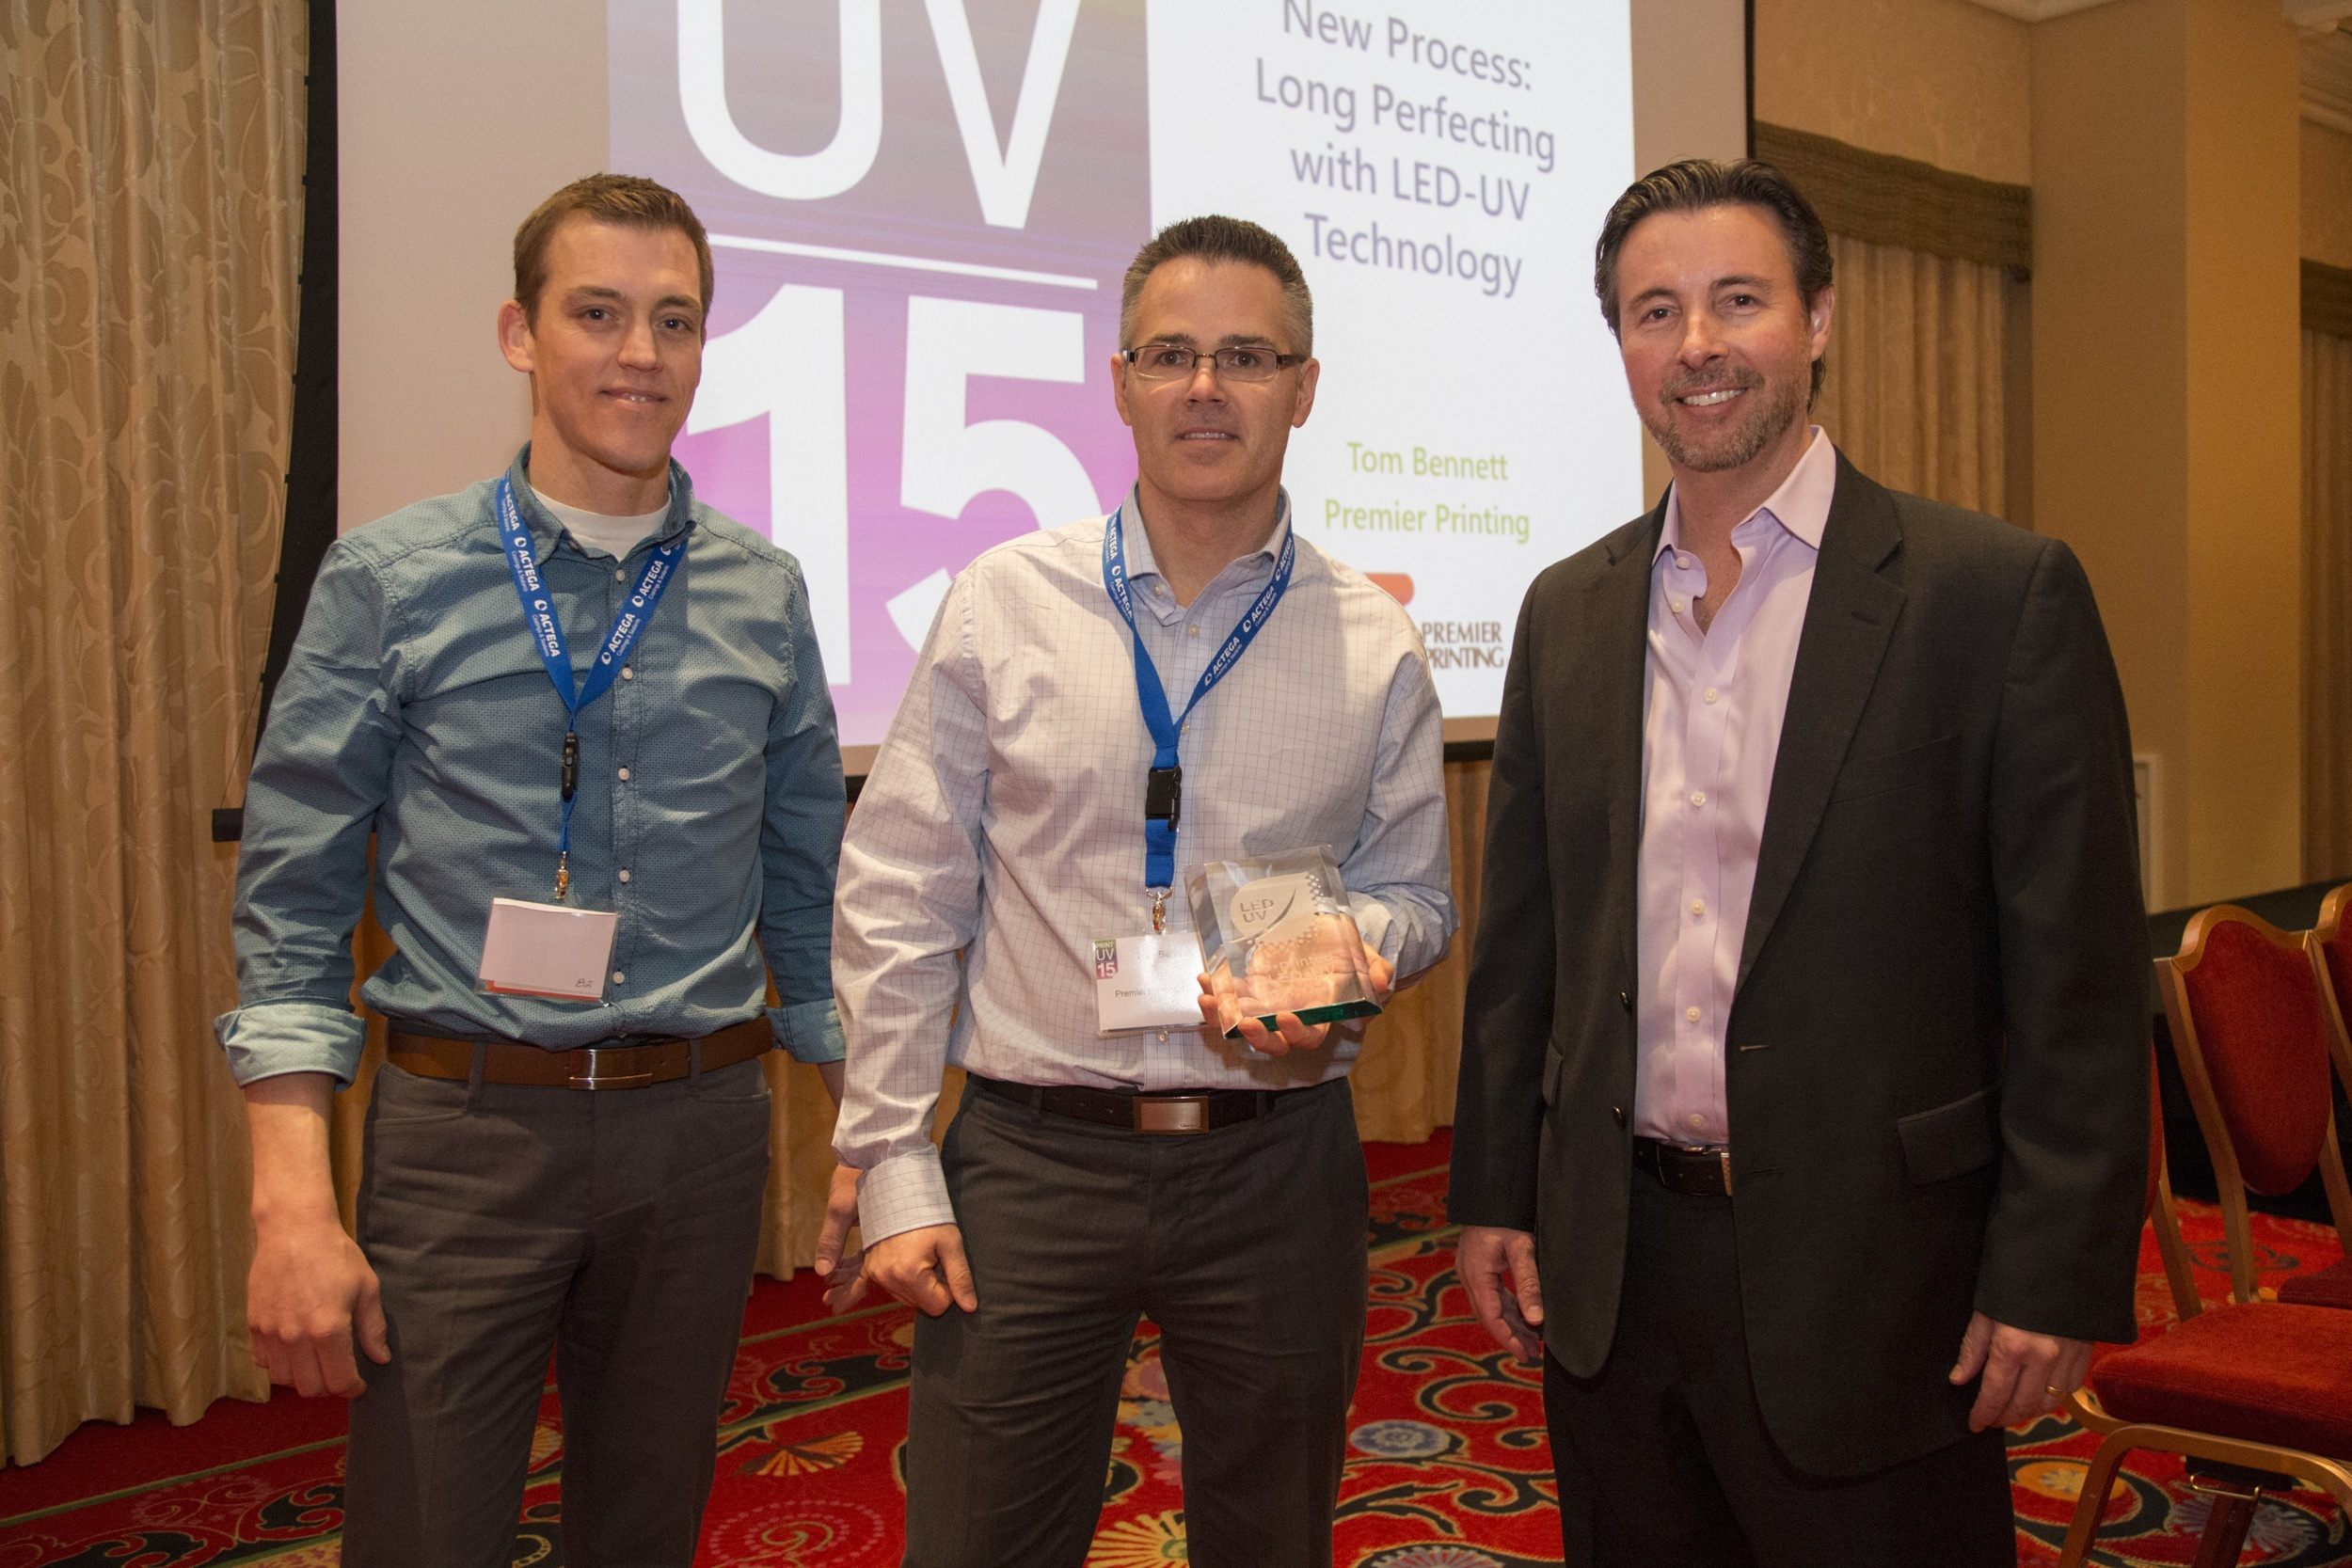 Pictured left to right areDave Gortemaker and Tom Bennett of Premier Printing who received an award for recognition of their leadership in the field of LED printing from Steve Metcalf of AMS on behalf of the International LED UV Association. The award was presented at the PRINT UV 2015 conference held on March 3-4 in Las Vegas, at which Premier presented on the topic to over 200 attendees.